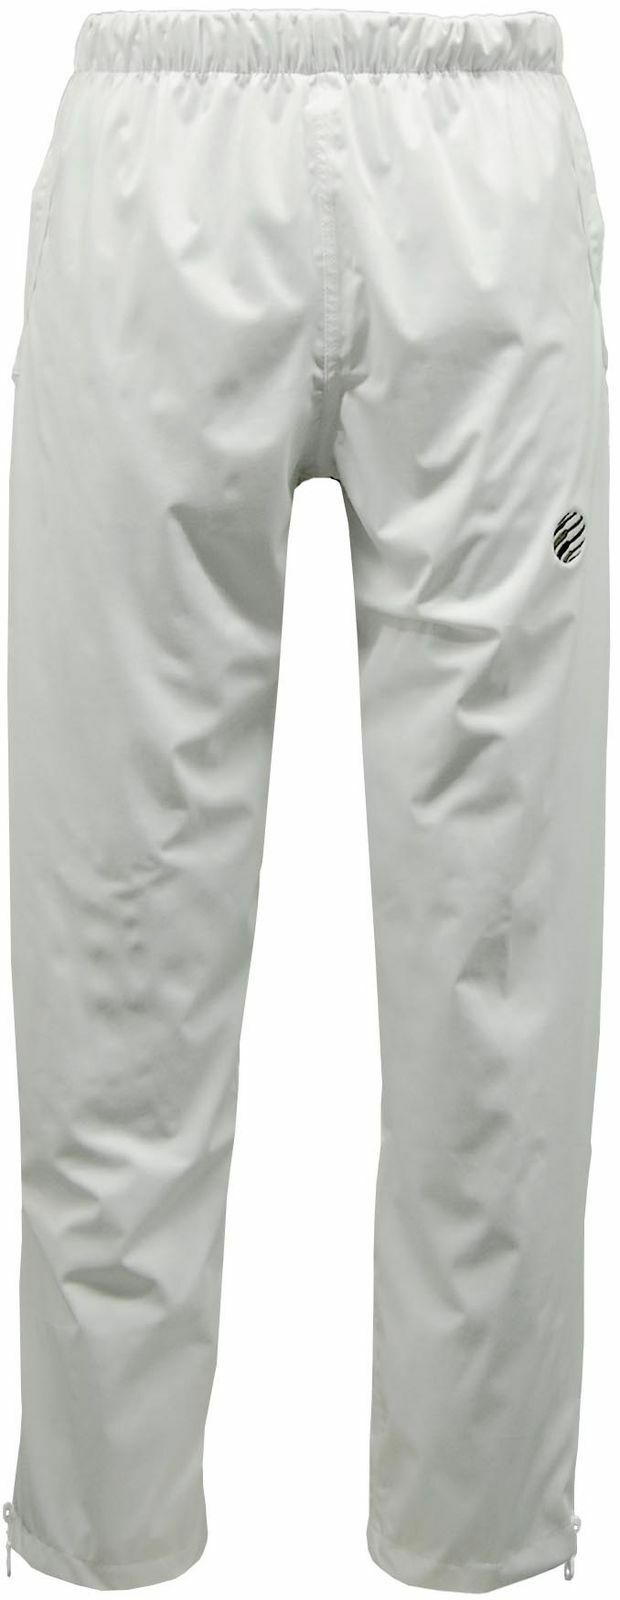 Bowls Green Play Unisex White Mesh Lined Waterproof Breathable Sports Trouser